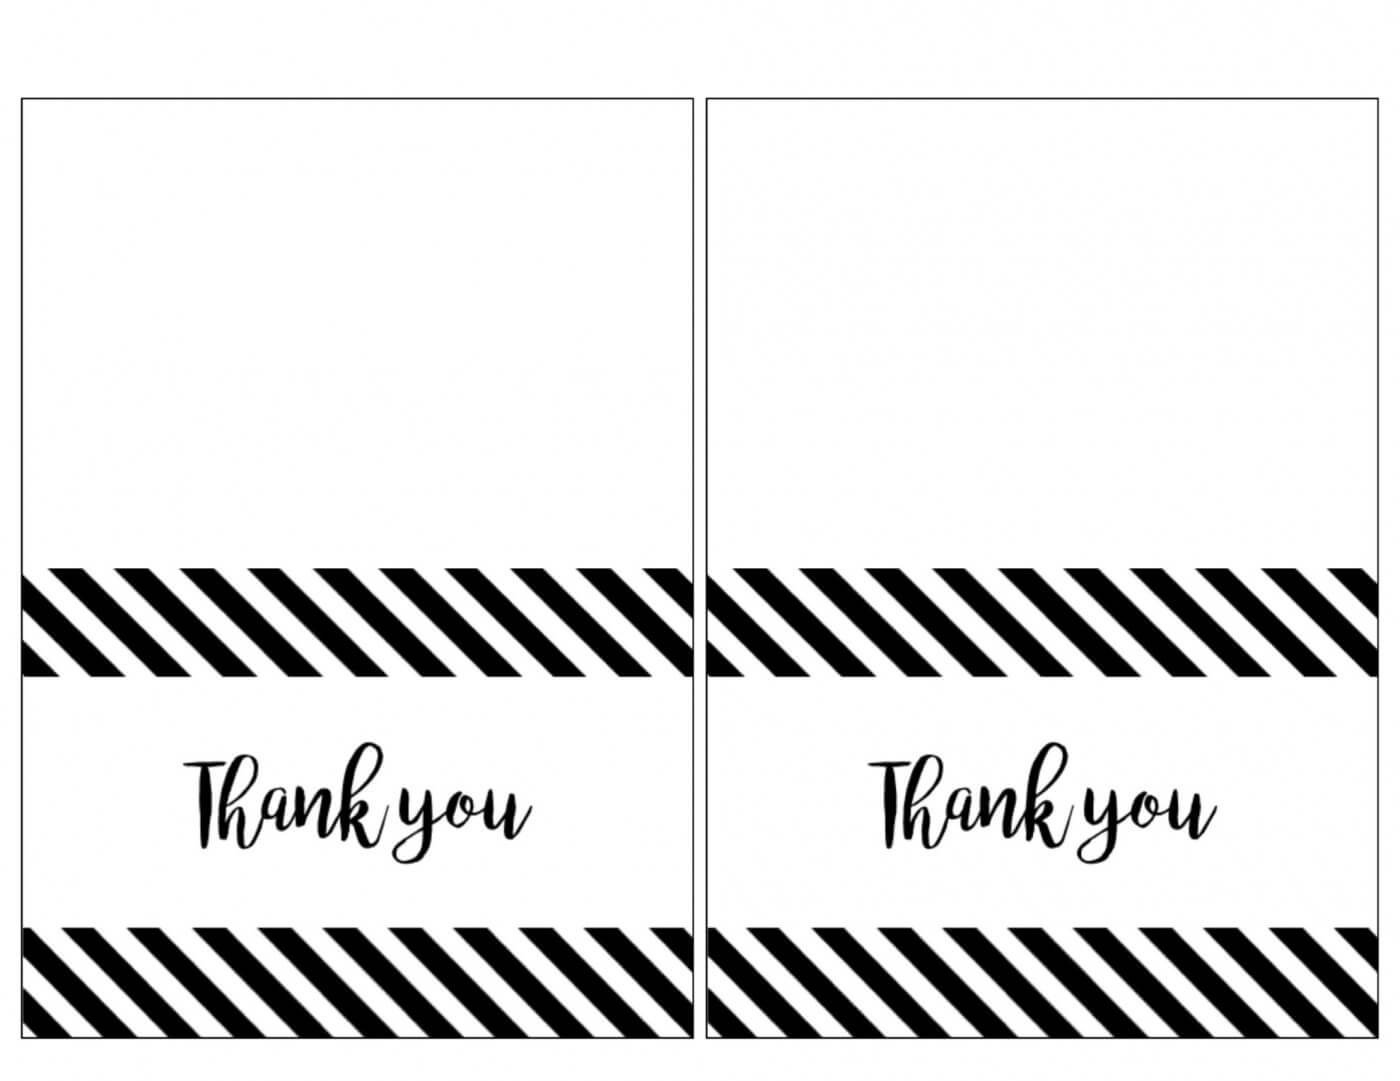 010 Template Ideas Thank You Note Card Rare Free Printable Within Thank You Note Cards Template